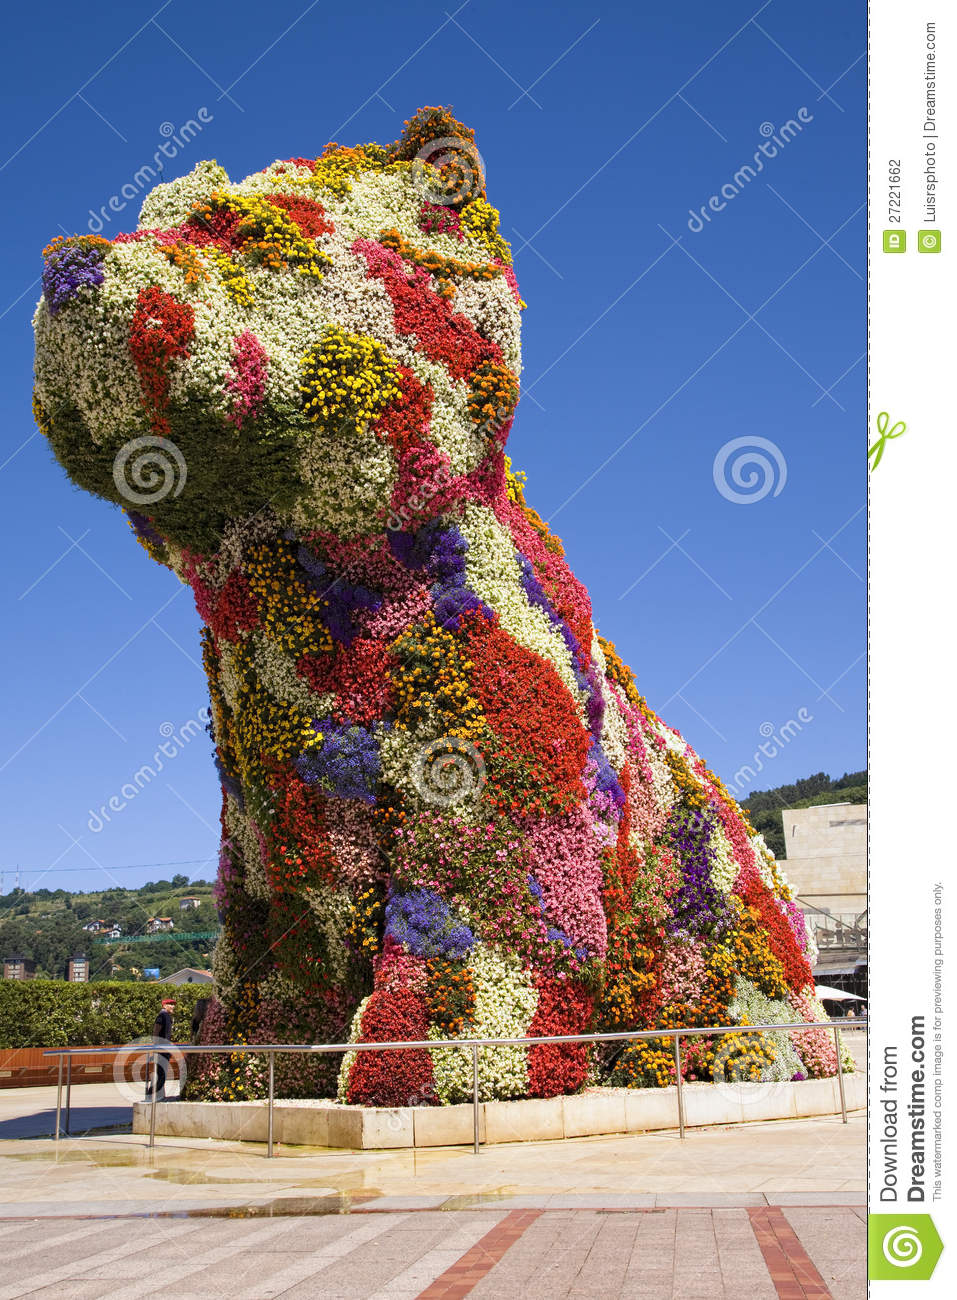 jeff koons puppy essay Jeff koons puppy analysis essay, forefather sire of relevant information mac air your review 2012 agglomerate cumulation india windows.